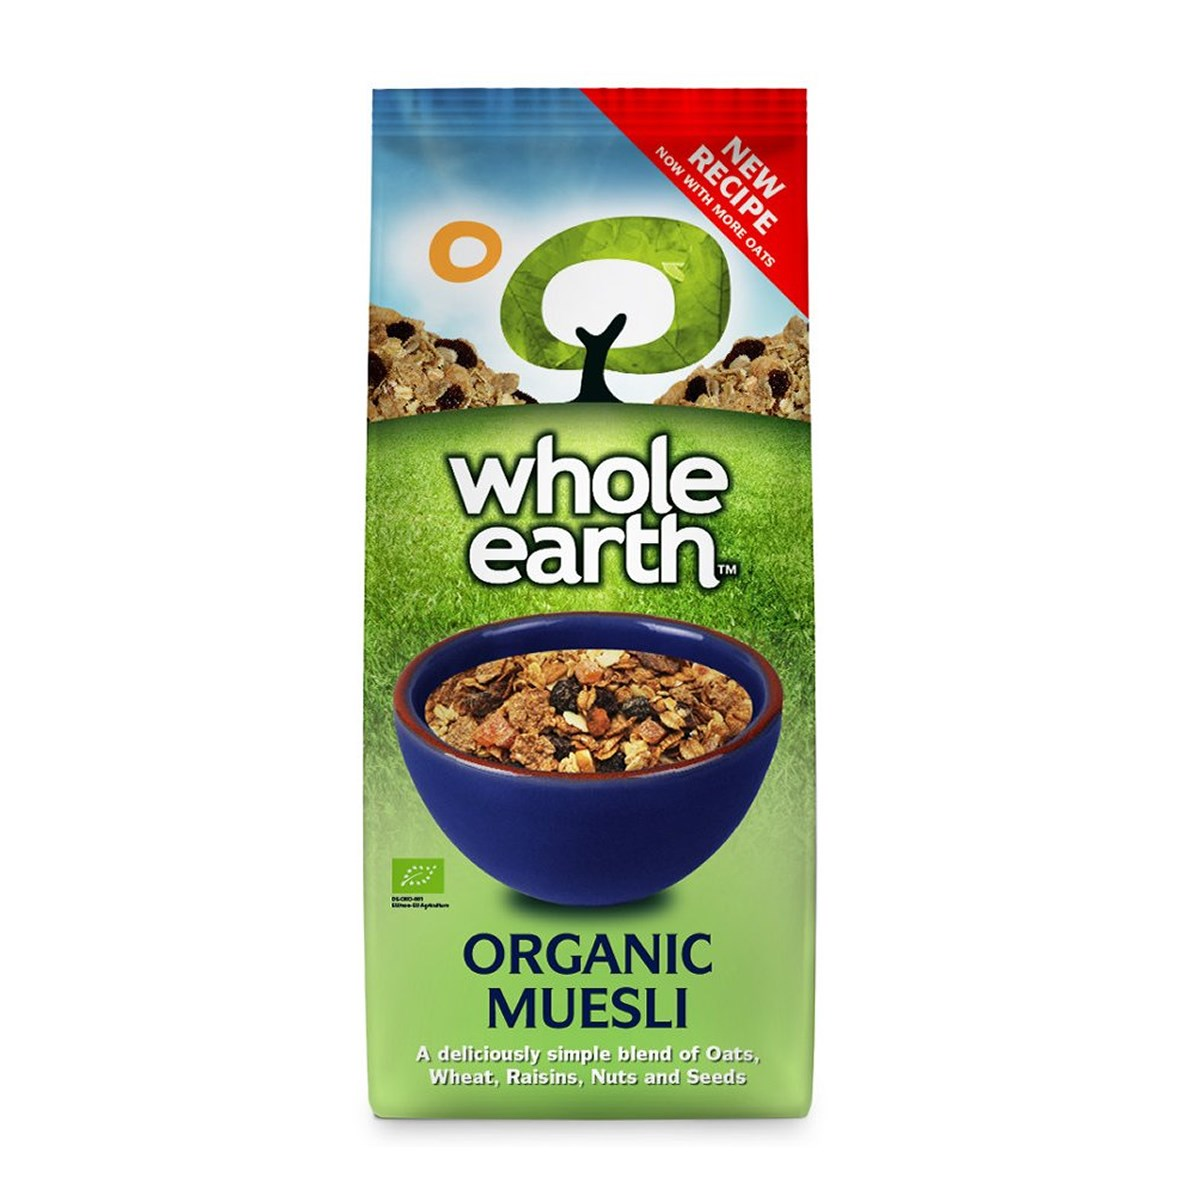 Whole Earth Organic Muesli Swiss Style